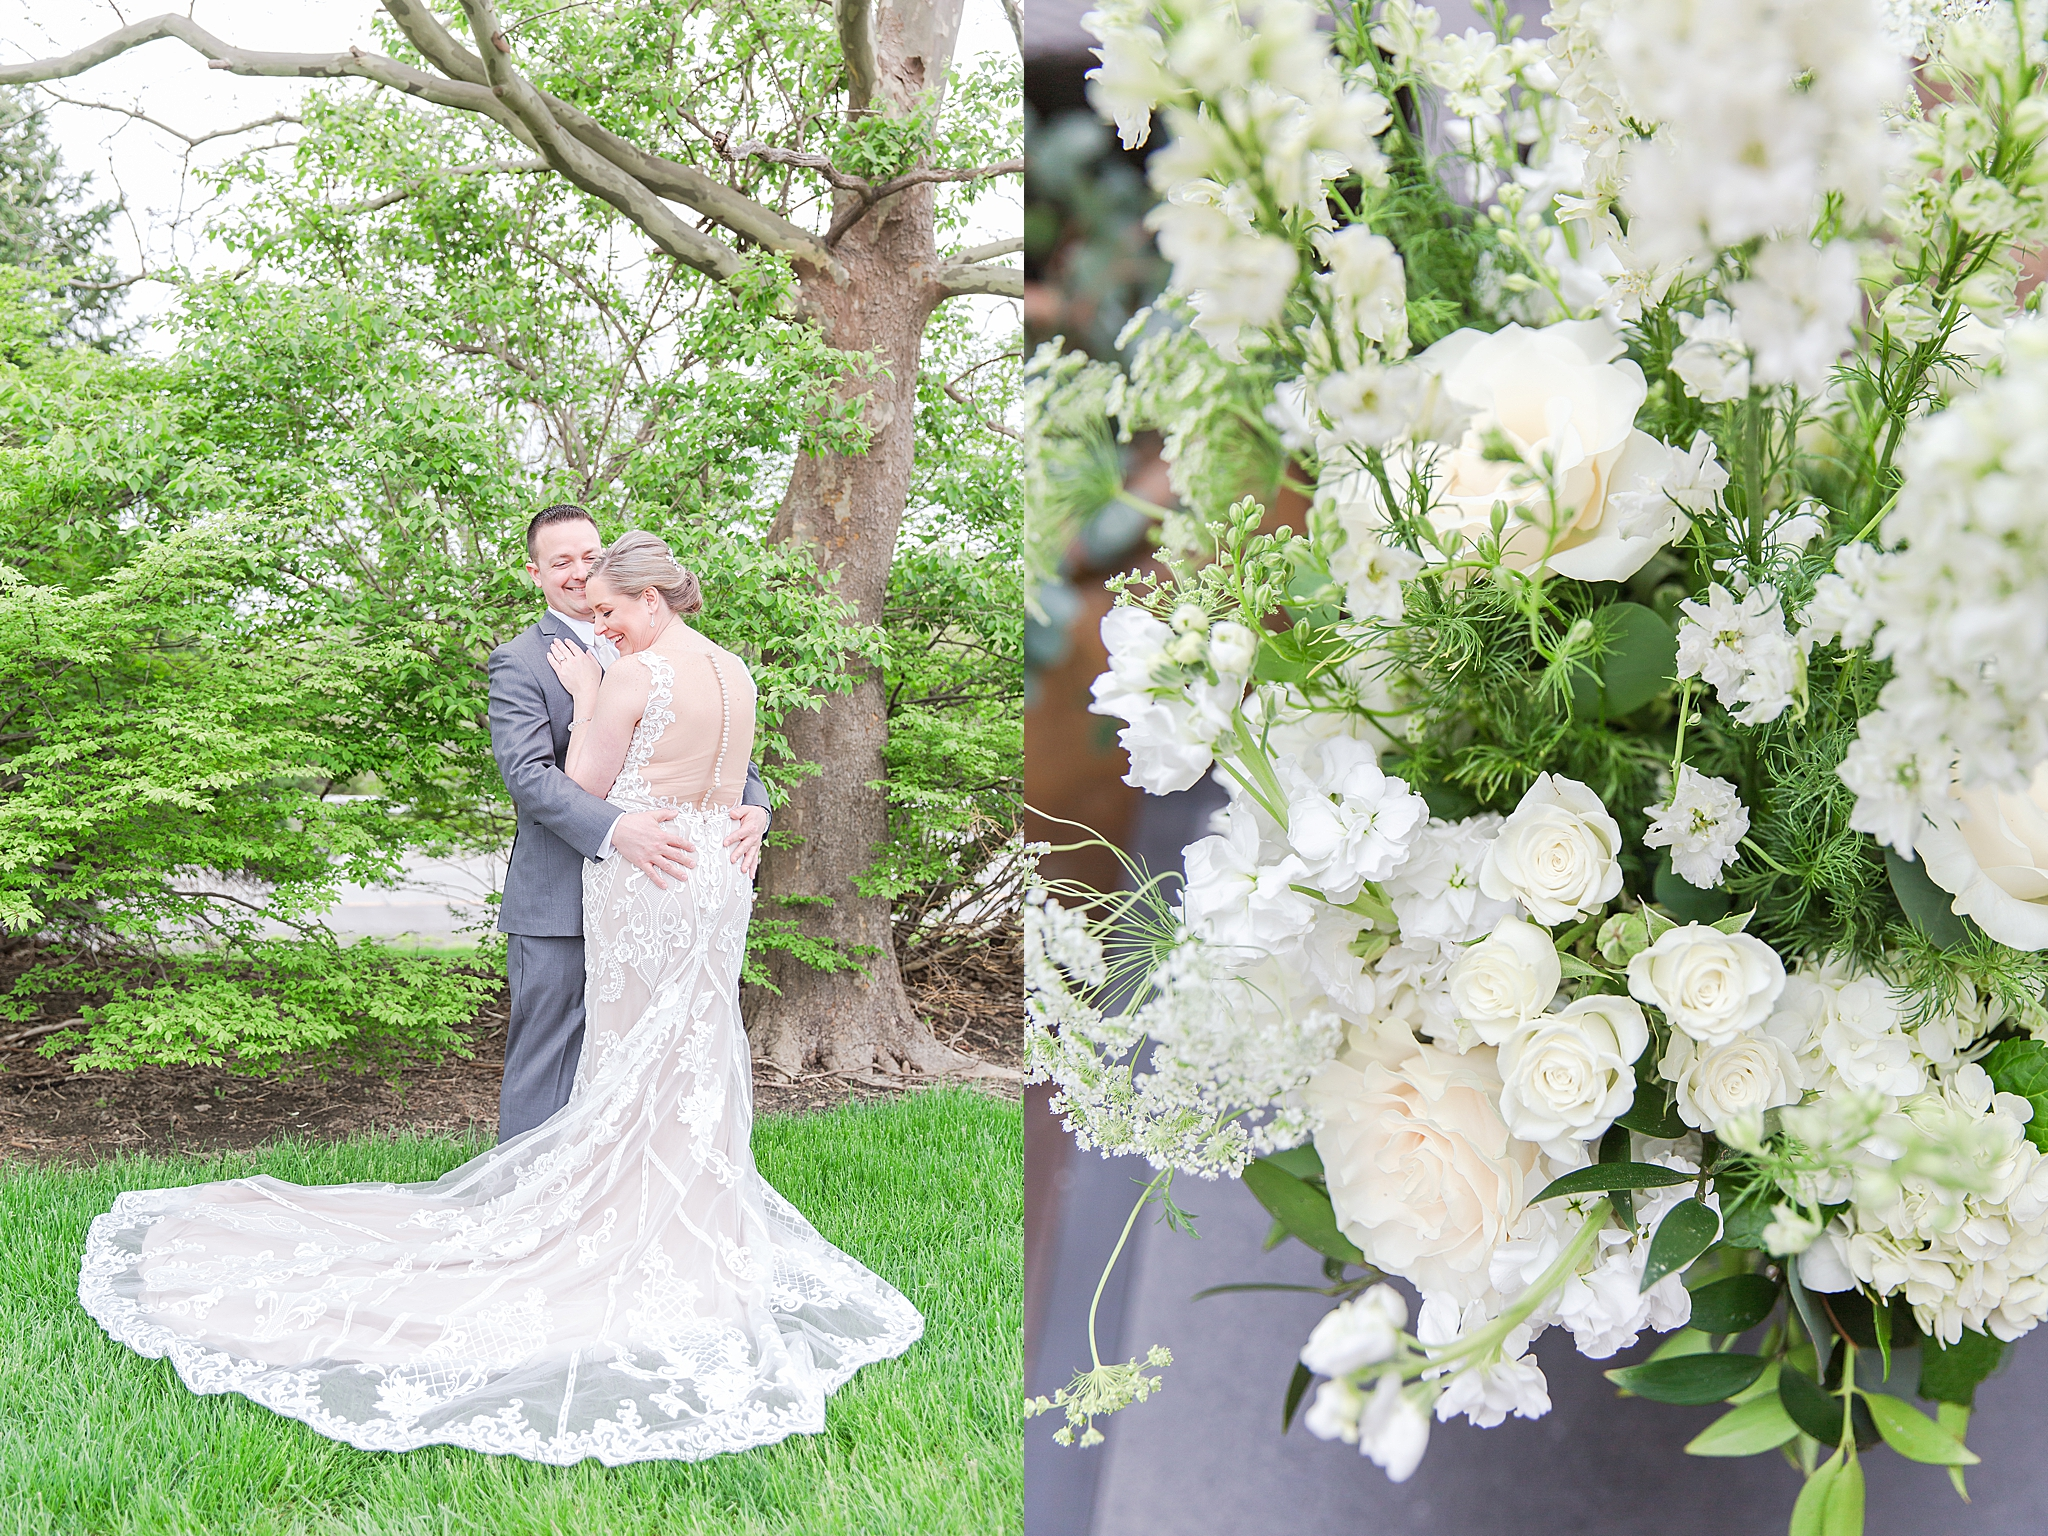 modern-romantic-wedding-photography-at-webers-in-ann-arbor-michigan-by-courtney-carolyn-photography_0045.jpg